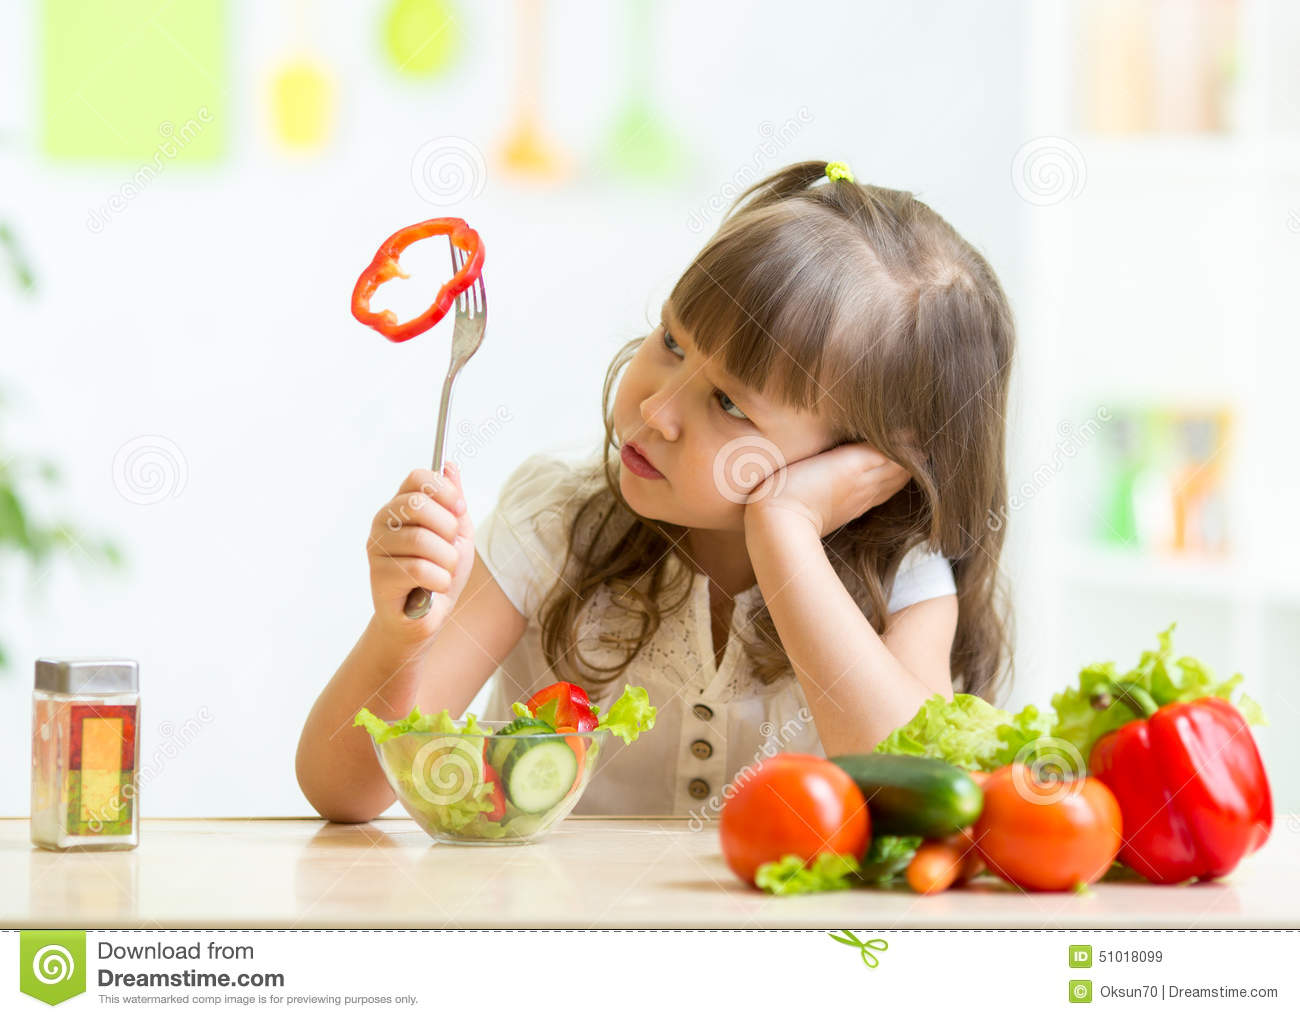 cute little girl not wanting to eat healthy food kid kitchen 51018099